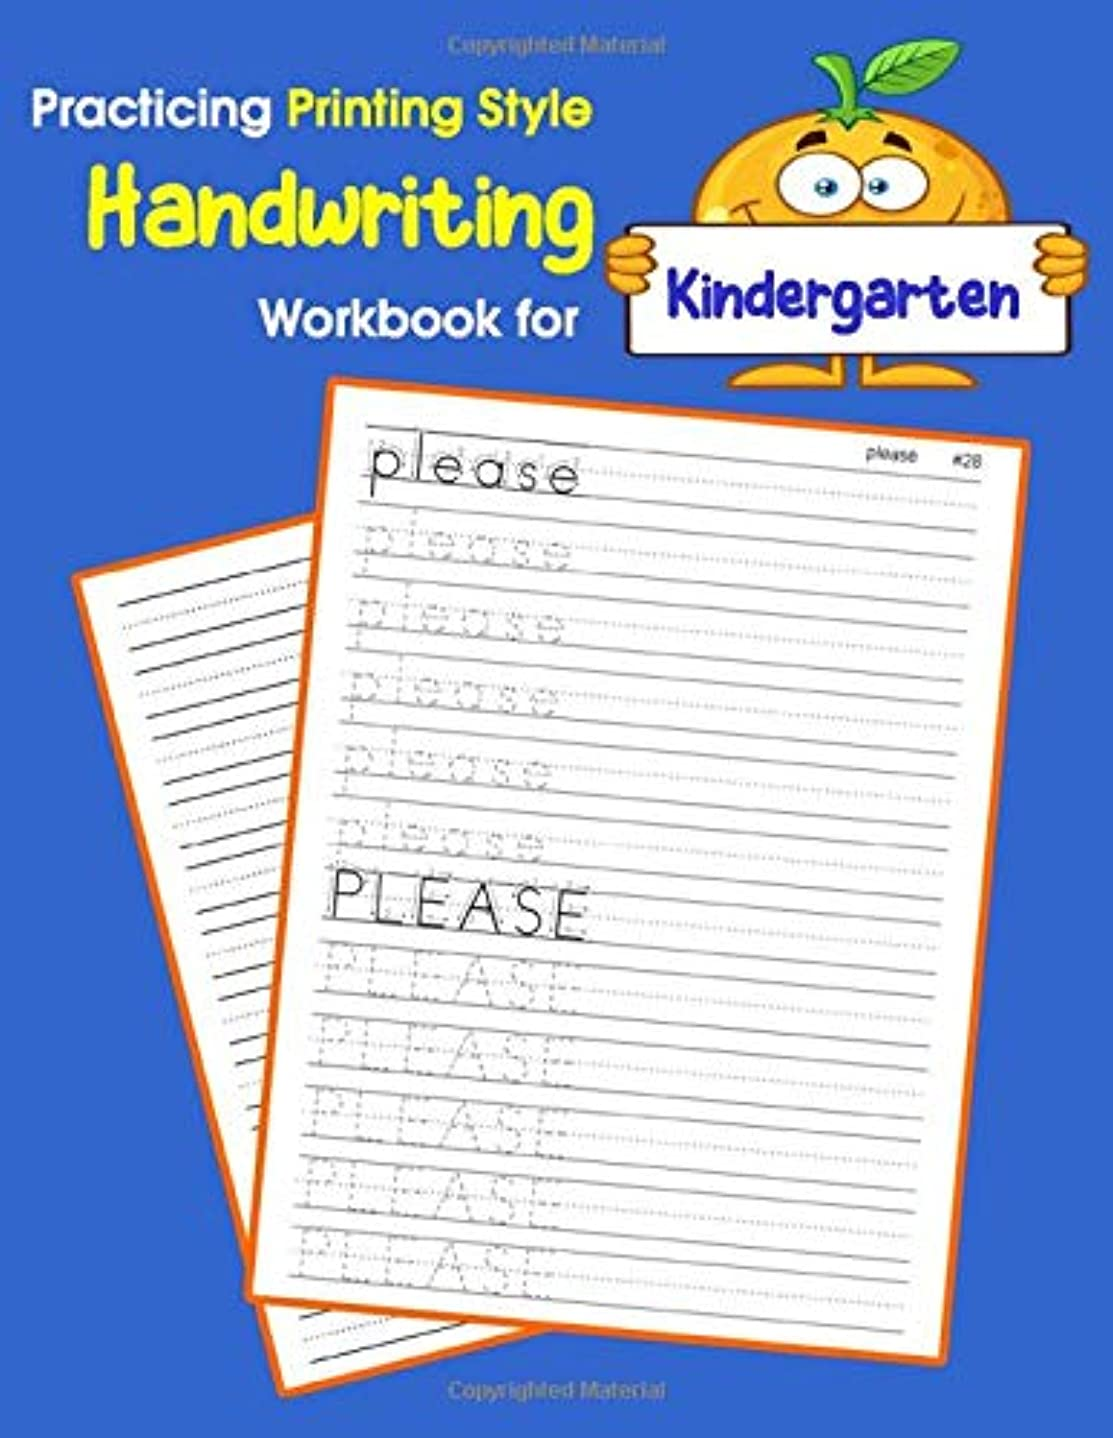 スクラッチリンク手Practicing Printing Style Handwriting Workbook for Kindergarten: Tracing and writing Dolch sight words kindergarten level (Dolch sight words Printing Style Handwriting)